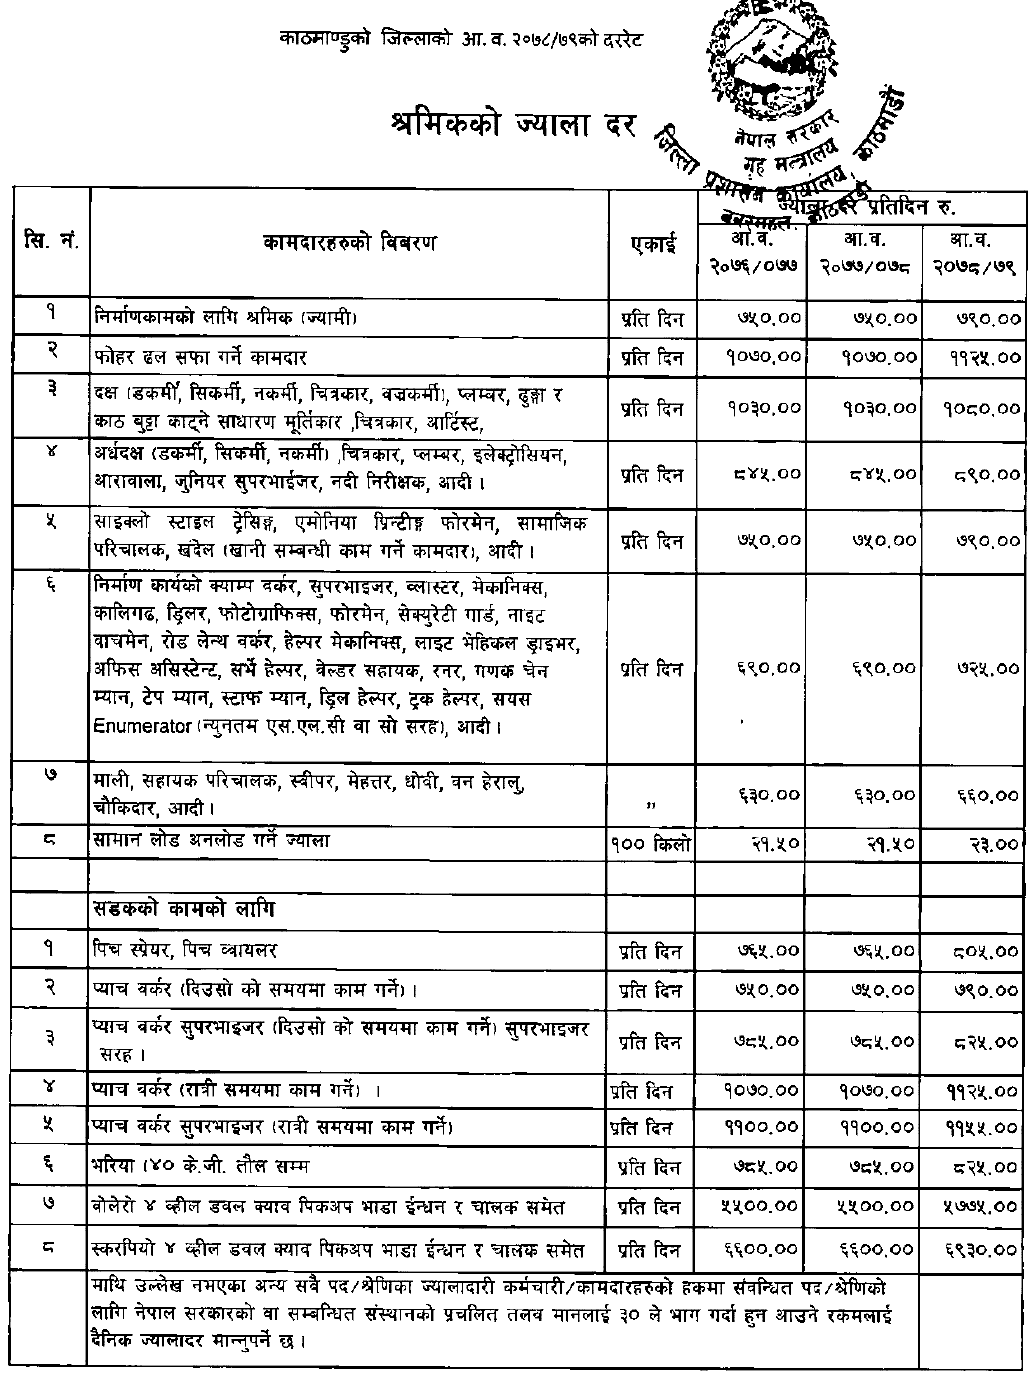 New wage Rate Fixed in Kathmandu District for the Fiscal Year 2078-79